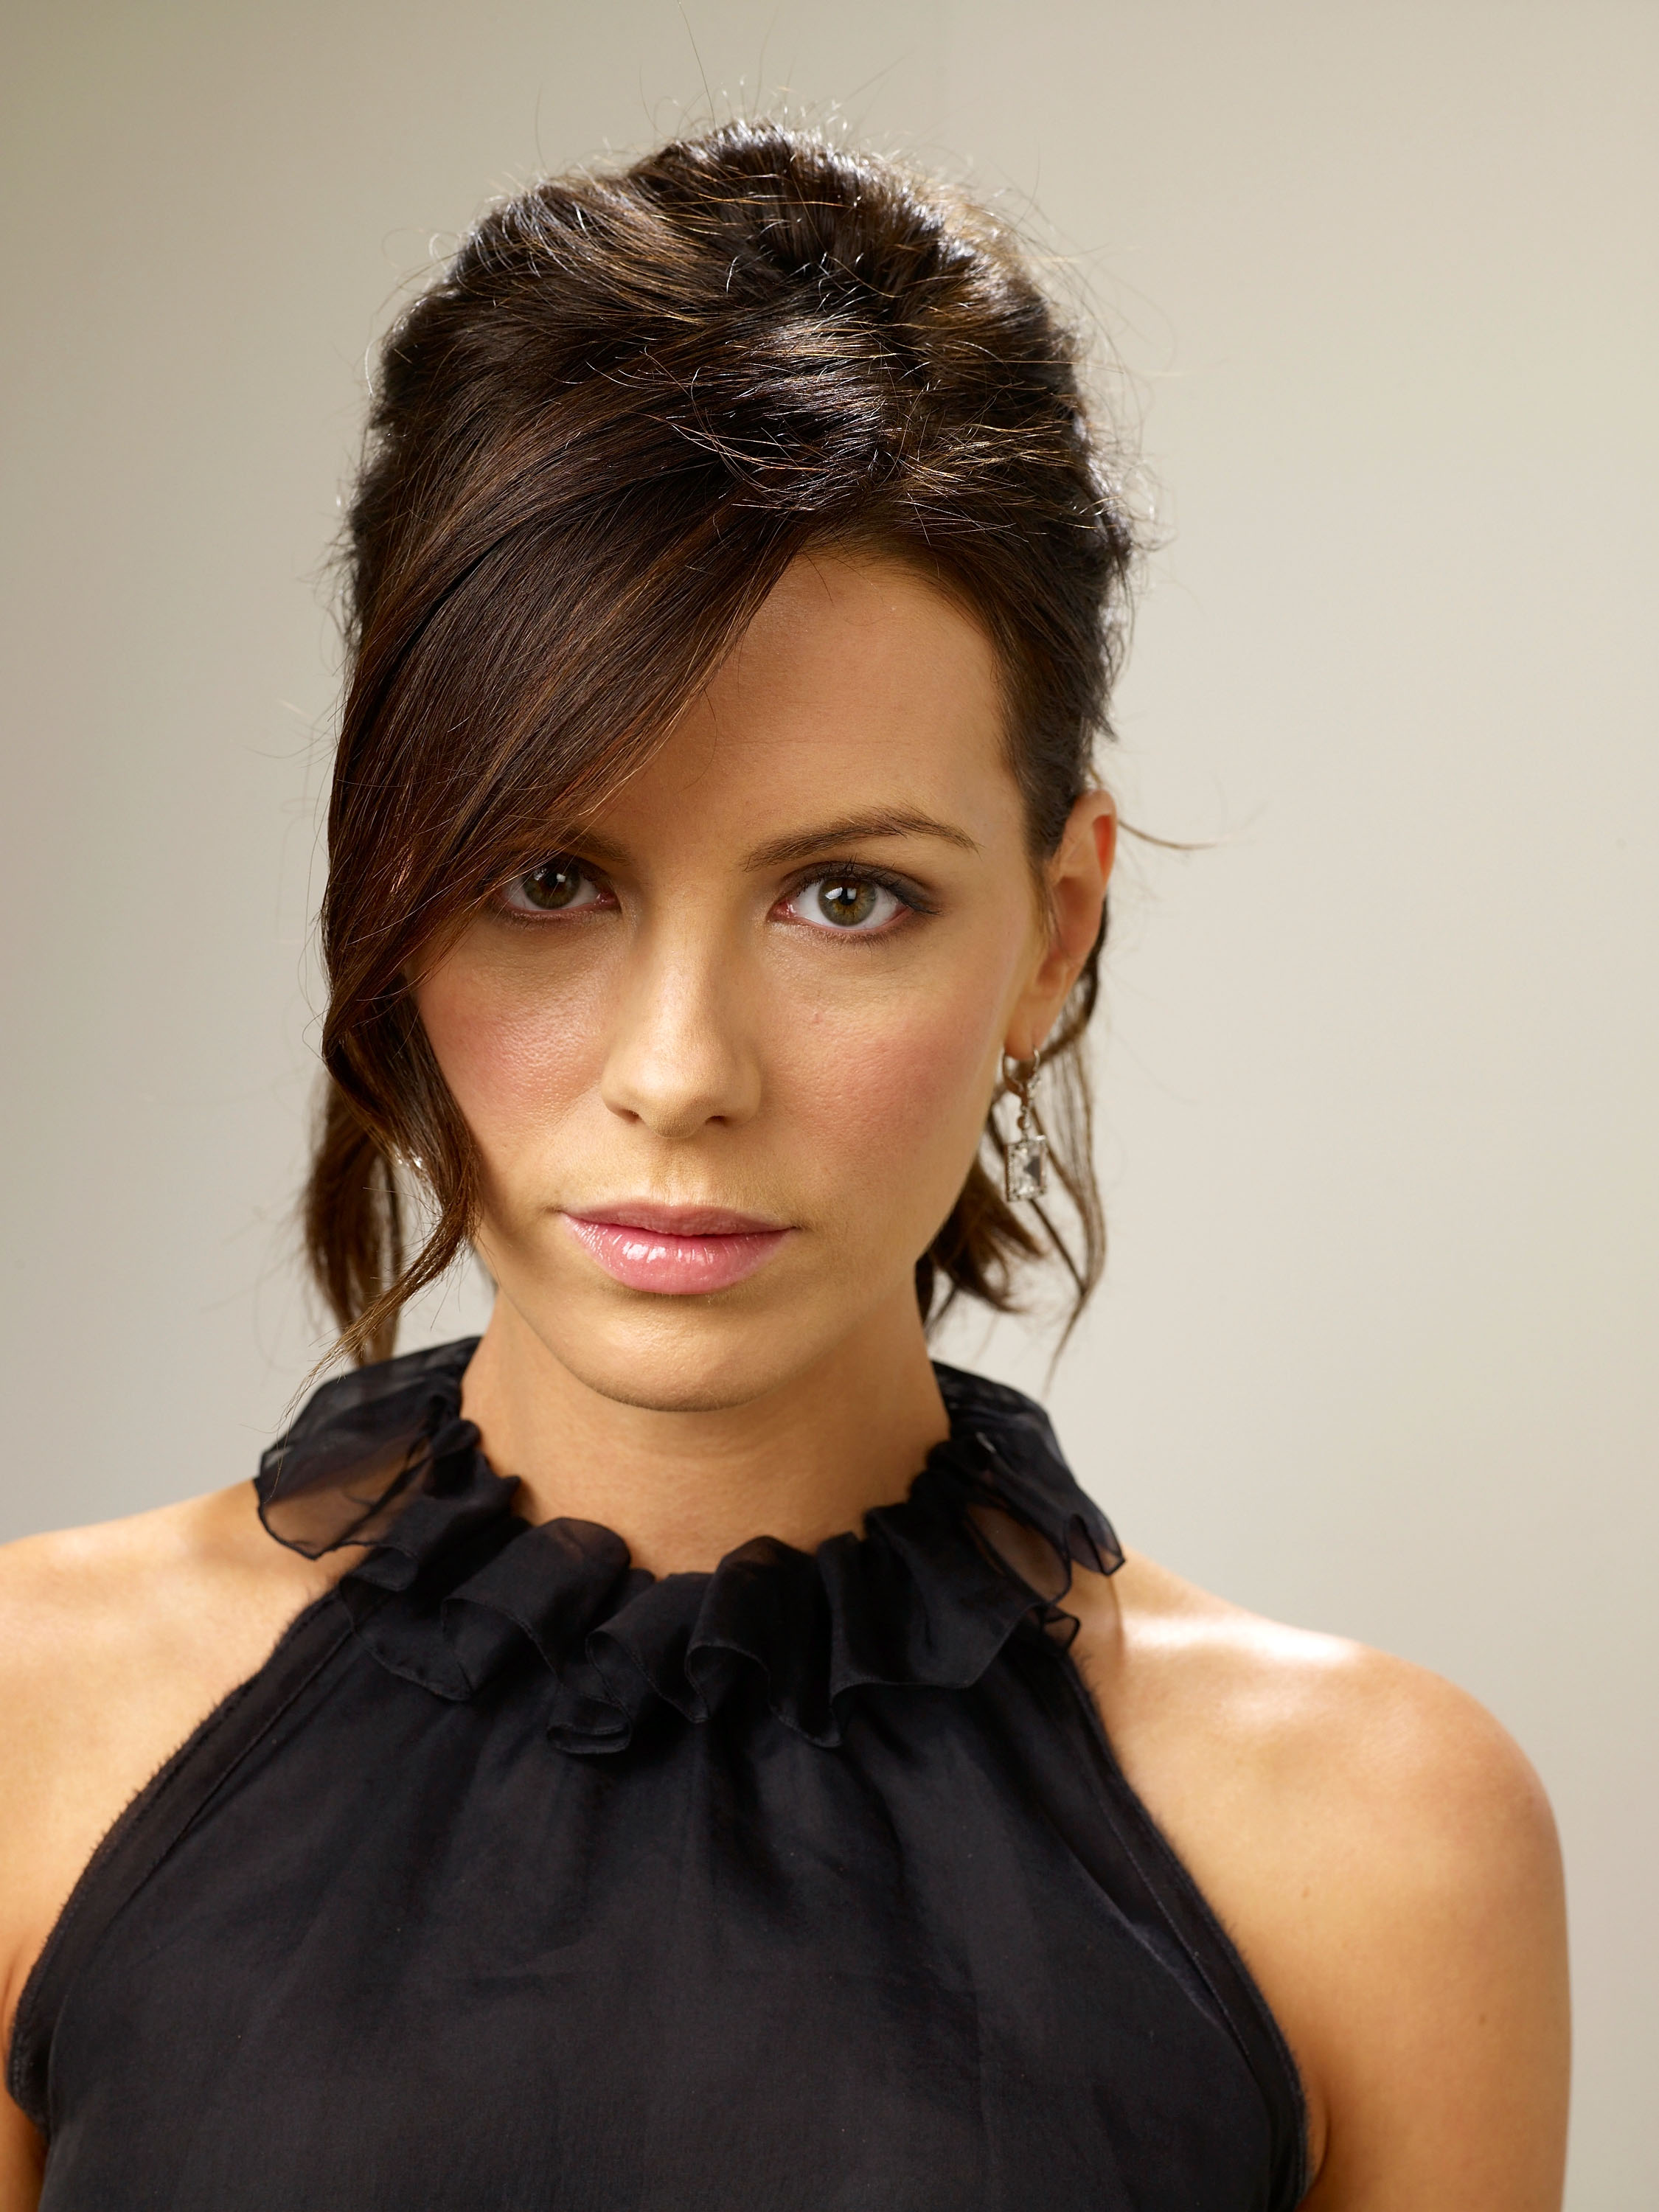 83610_Celebutopia-Kate_Beckinsale-Nothing_But_The_Truth_TIFF_2008_Portrait_Session-01_122_221lo.jpg